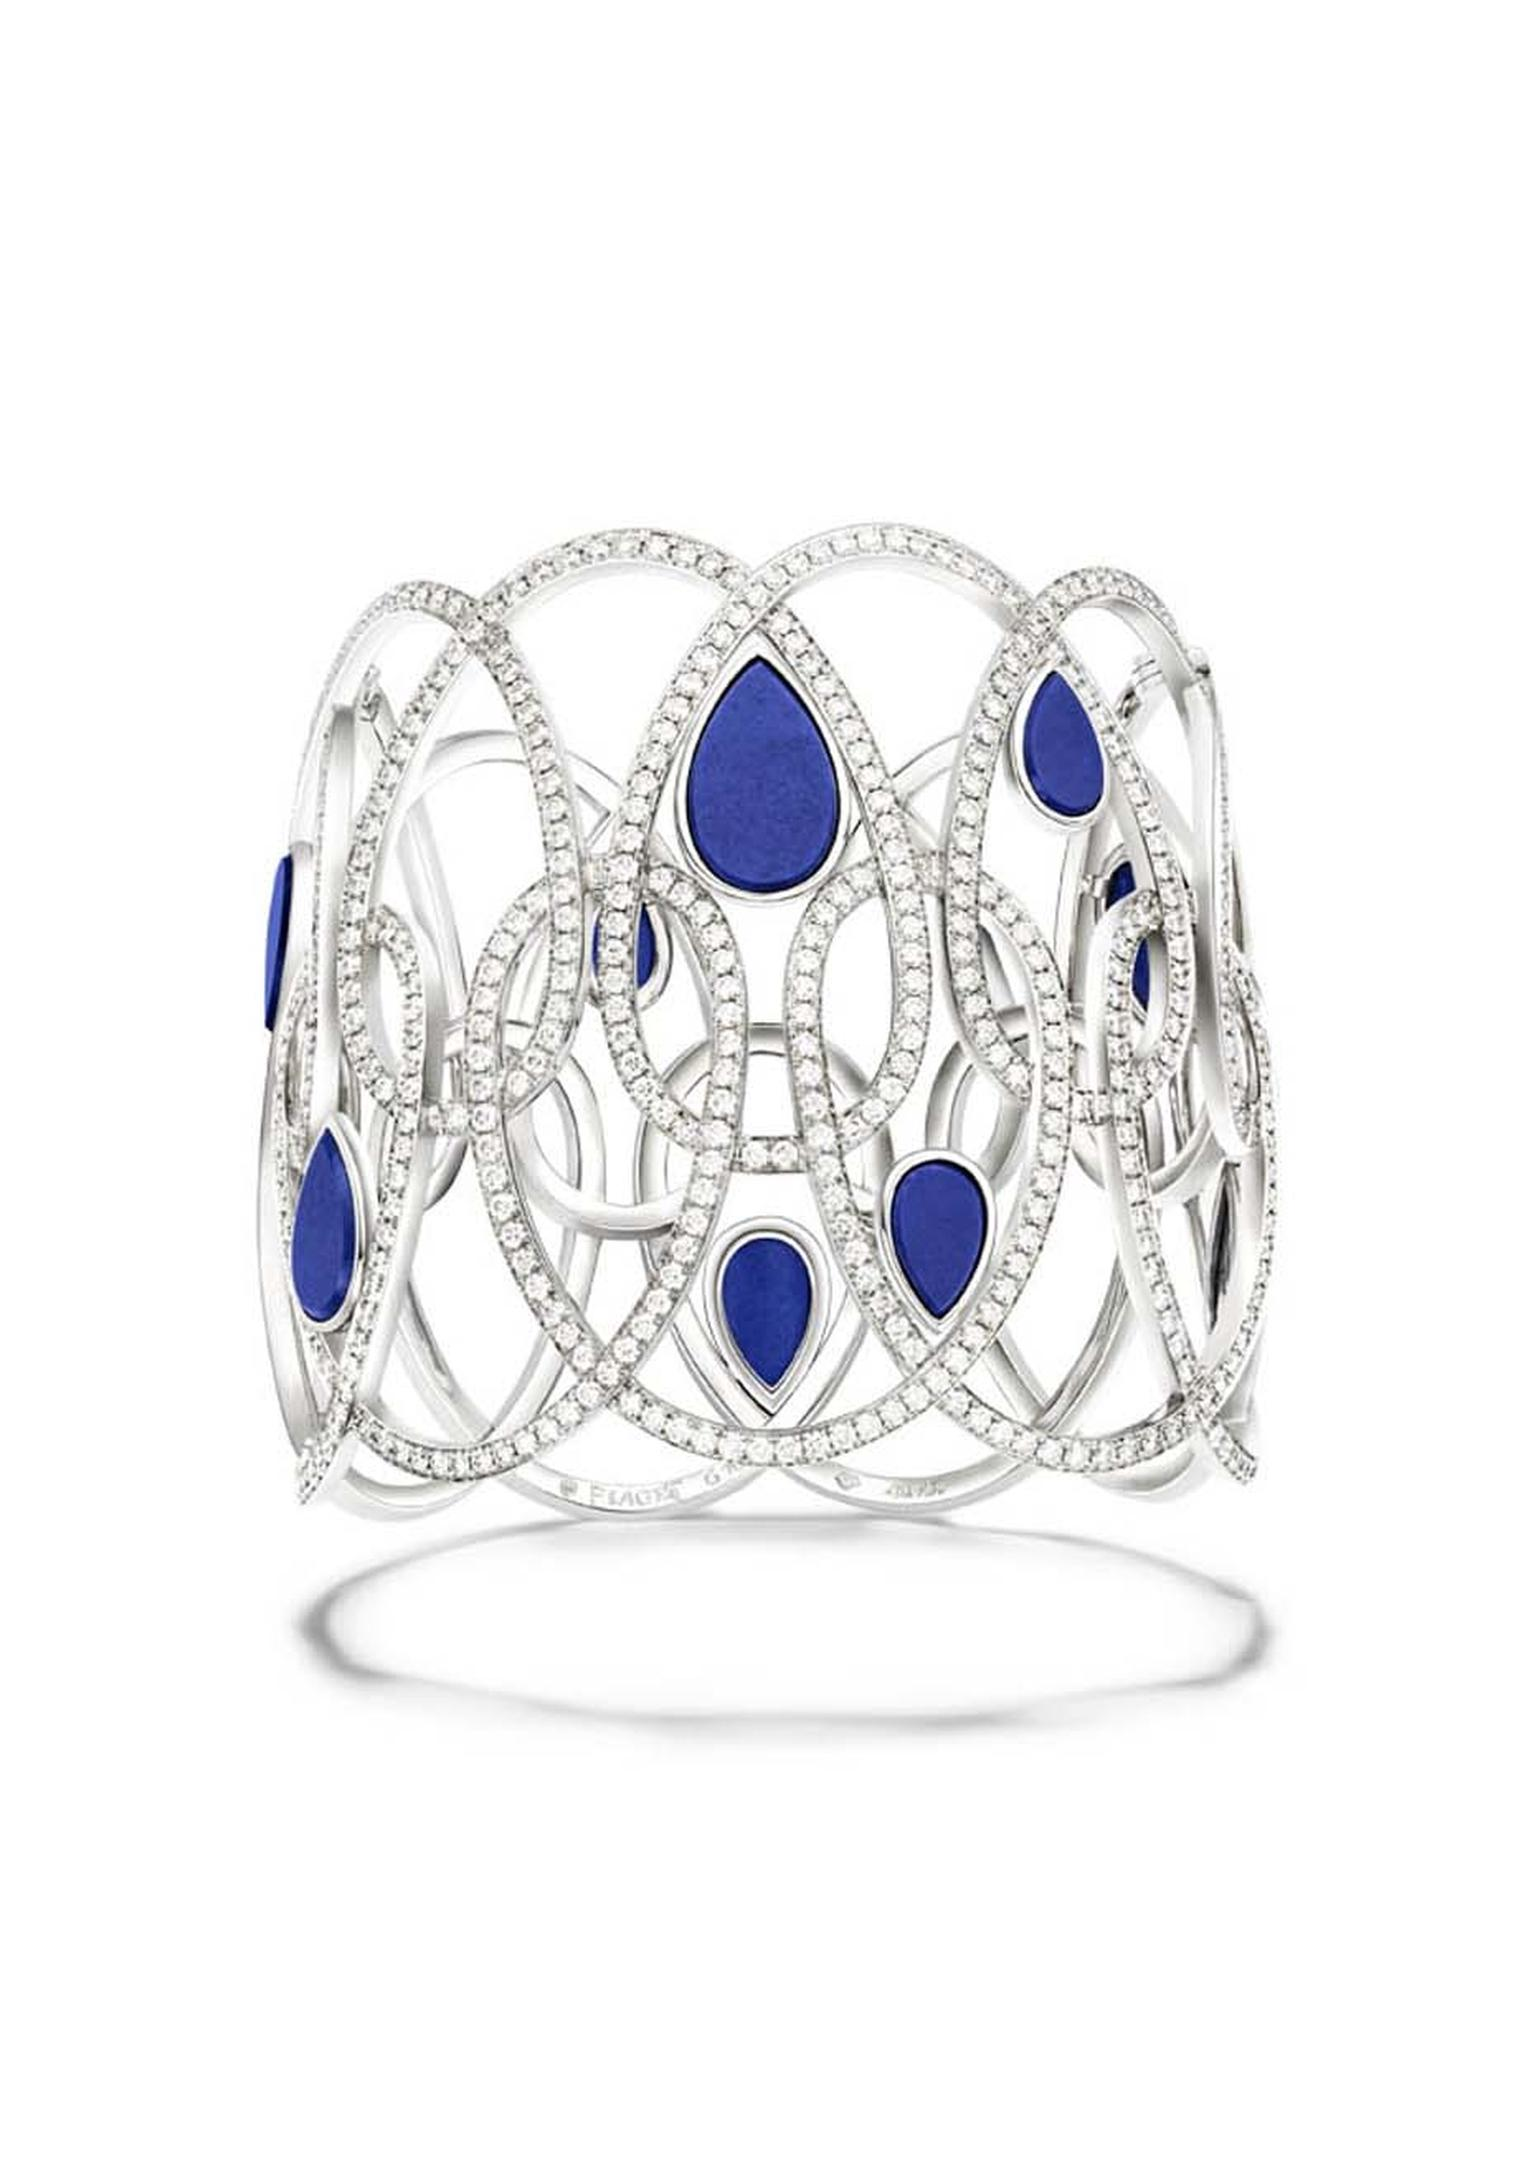 Piaget Extremely Piaget collection white gold bracelet set with 870 brilliant-cut diamonds and nine lapis lazuli cabochons.